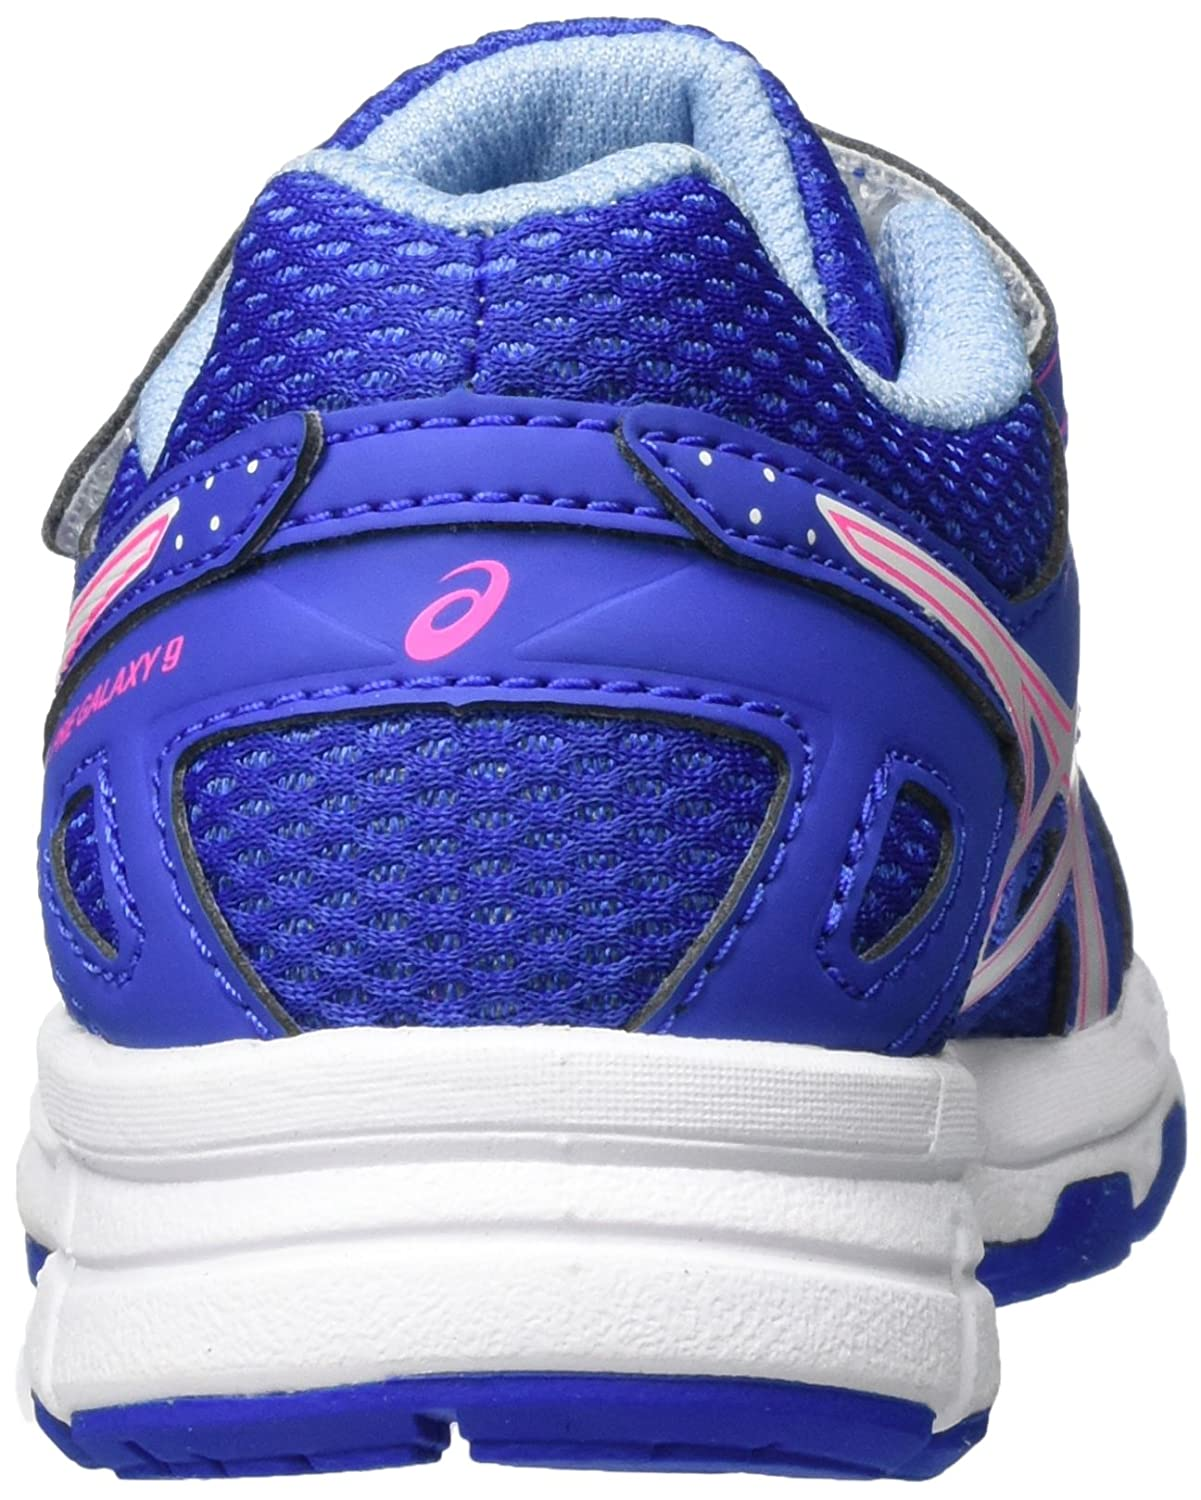 Asics Unisex-Kinder Pre Galaxy 9 PS Gymnastikschuhe, Blau (Directoire Blue/Black/Hot Oran), 28.5 EU